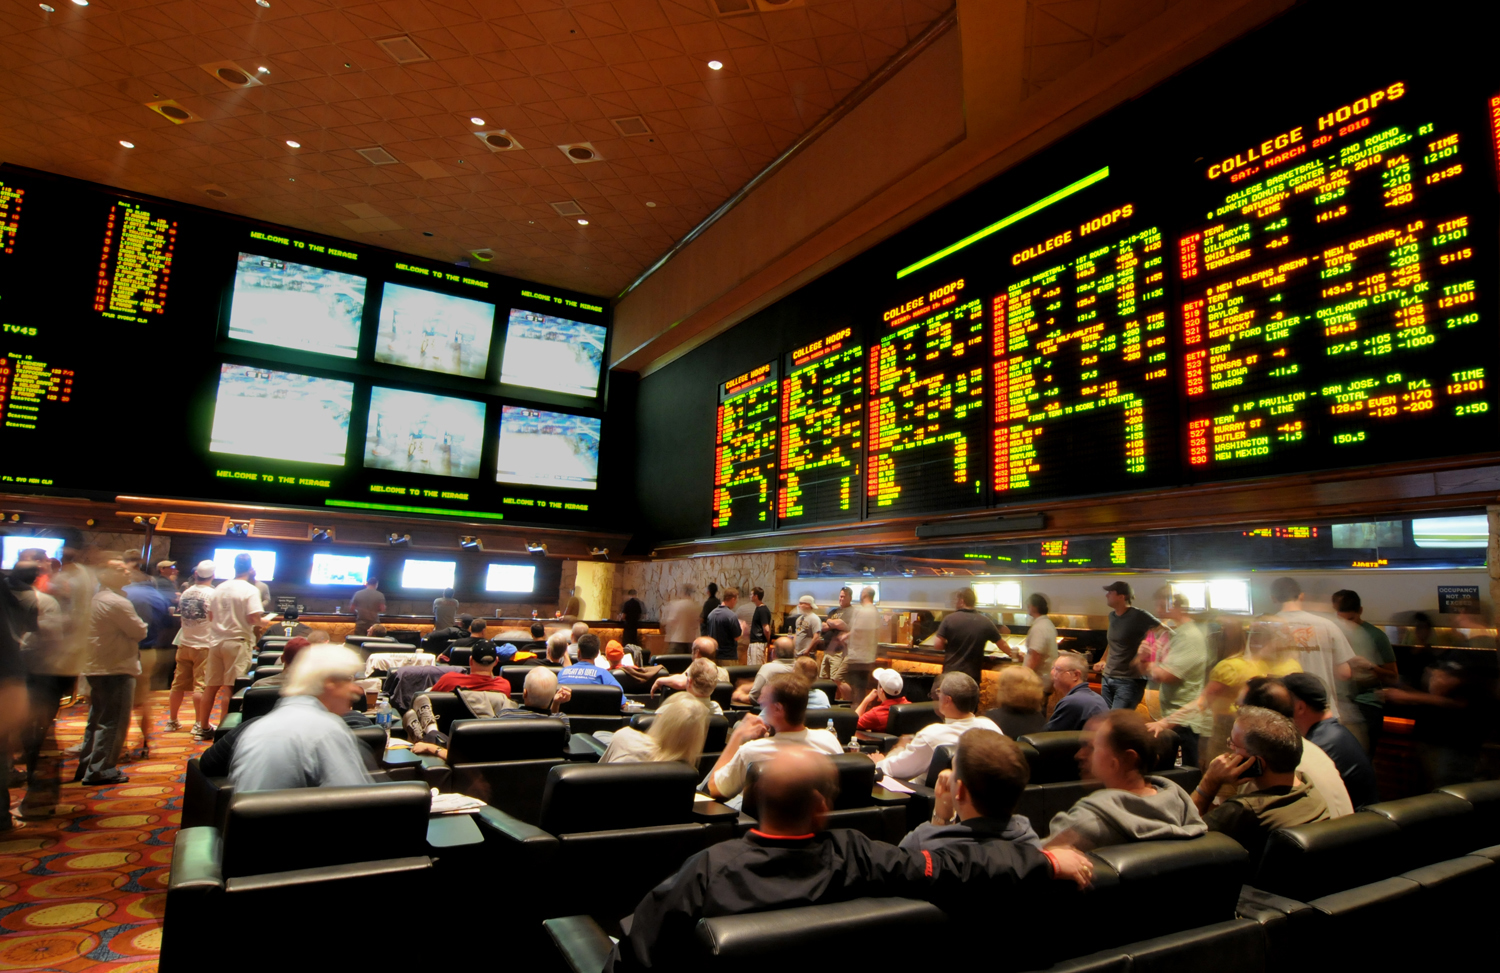 Las Vegas Race and Sports Book at the Mirage